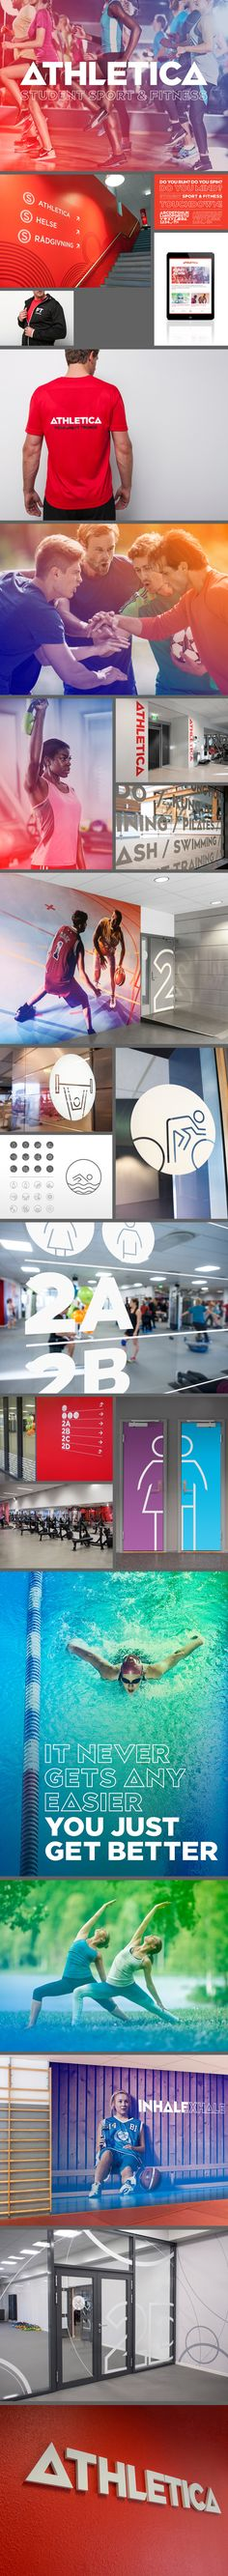 Fresh identity design for a student sport and fitness centre in Norway - SiO Design: Mission - Hege Homstvedt / Gary Swindell